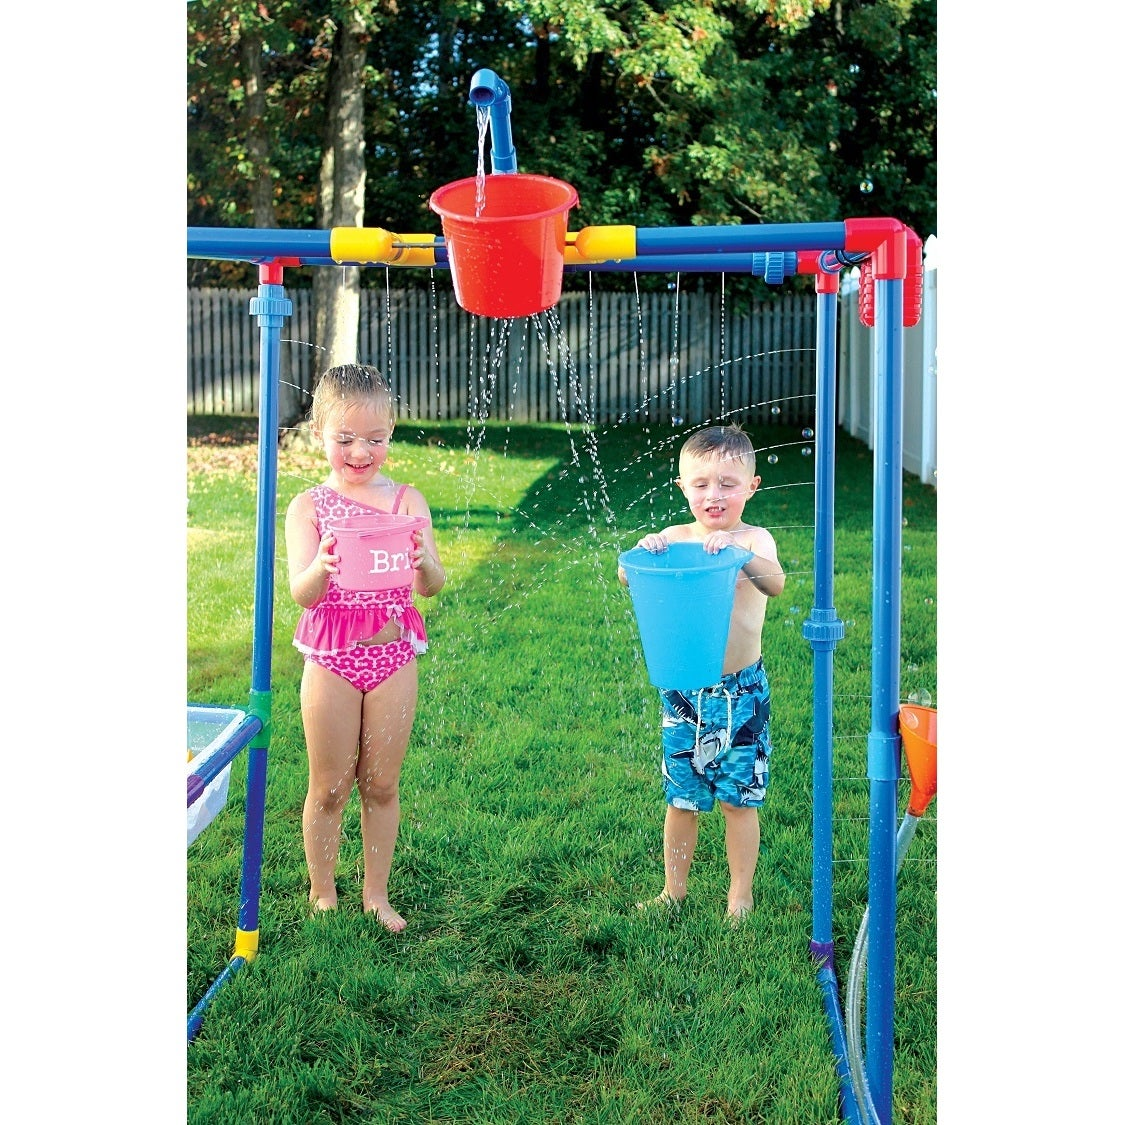 Buckets Of Fun 6-in-1 Backyard Waterpark - Free Shipping Today -  Overstock.com - 21071715